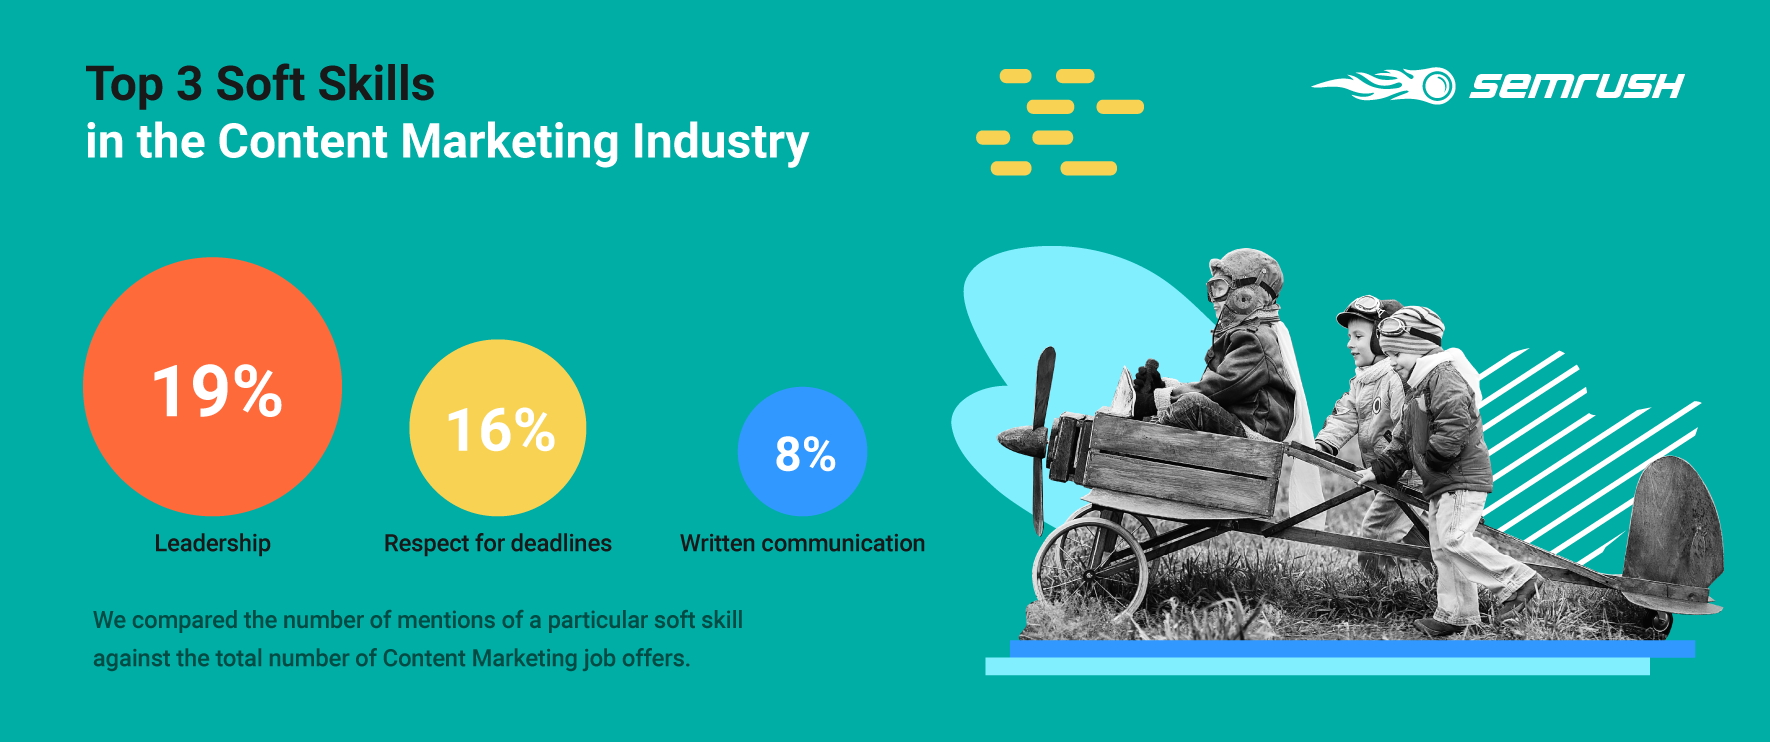 Top 3 Soft Skills in the Content Marketing Industry